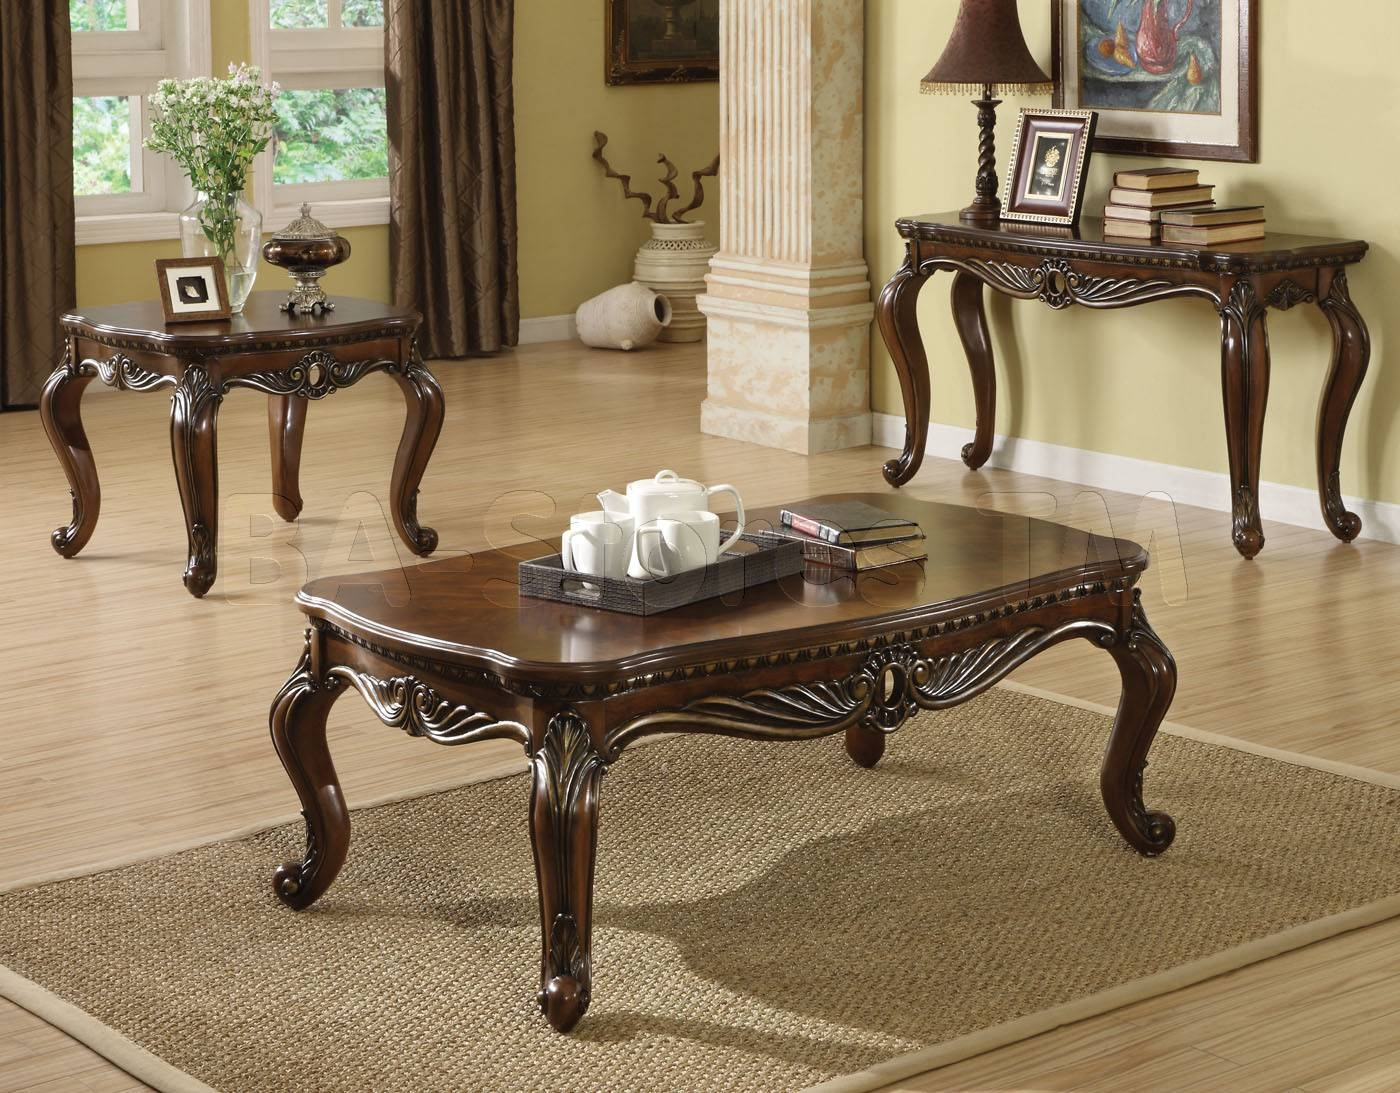 Cherry Wood Coffee Table And End Tables | Coffee Tables Decoration inside Coffee Table With Matching End Tables (Image 6 of 30)